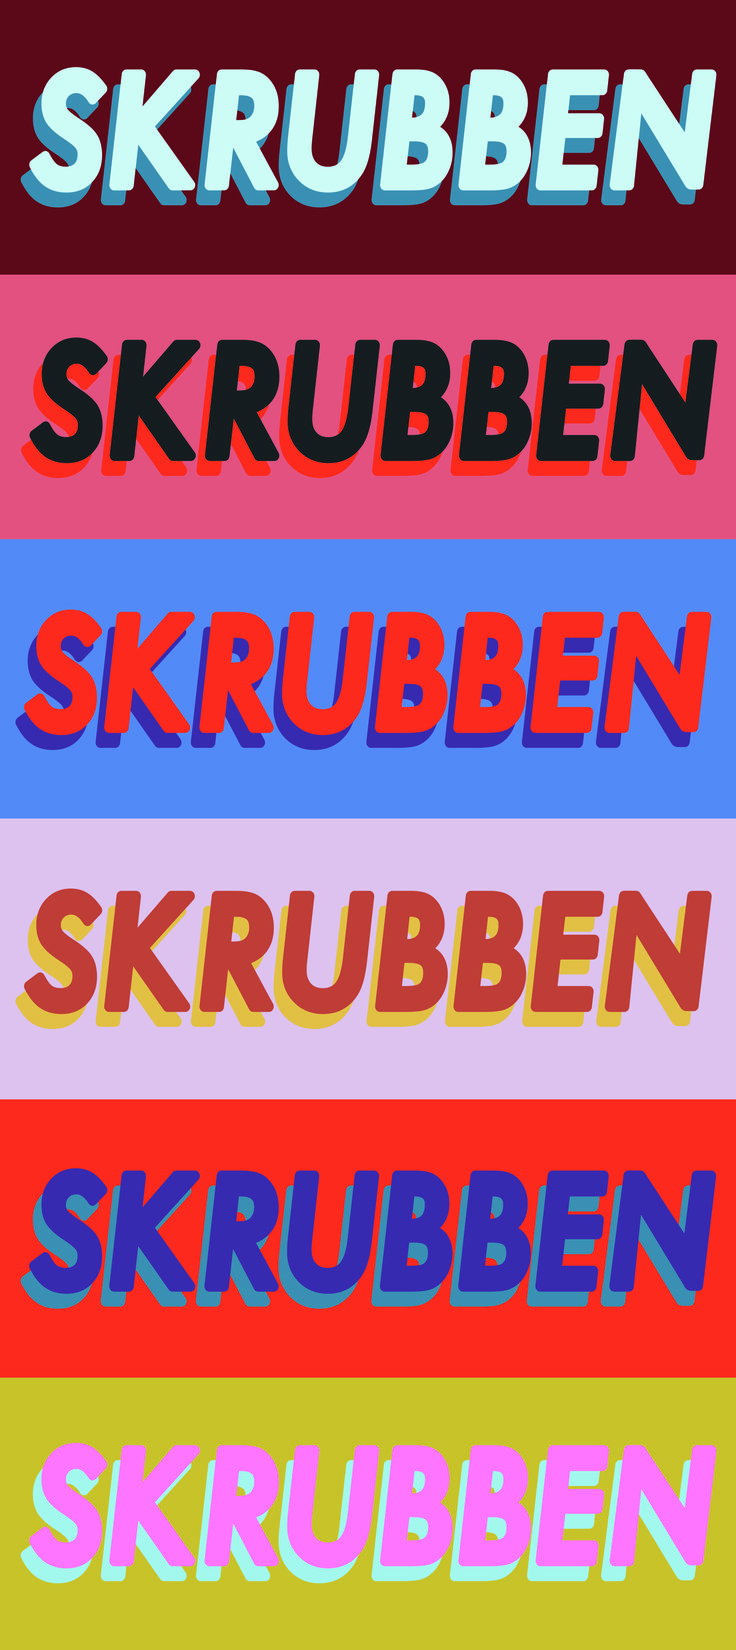 """Visual identity for the comedy club """"Skrubben"""" in Sweden. Art direction and graphic design by Ingrid Linnéa Arnsand Jonsson and Milly Björkman. www.mynameisingrid.com"""